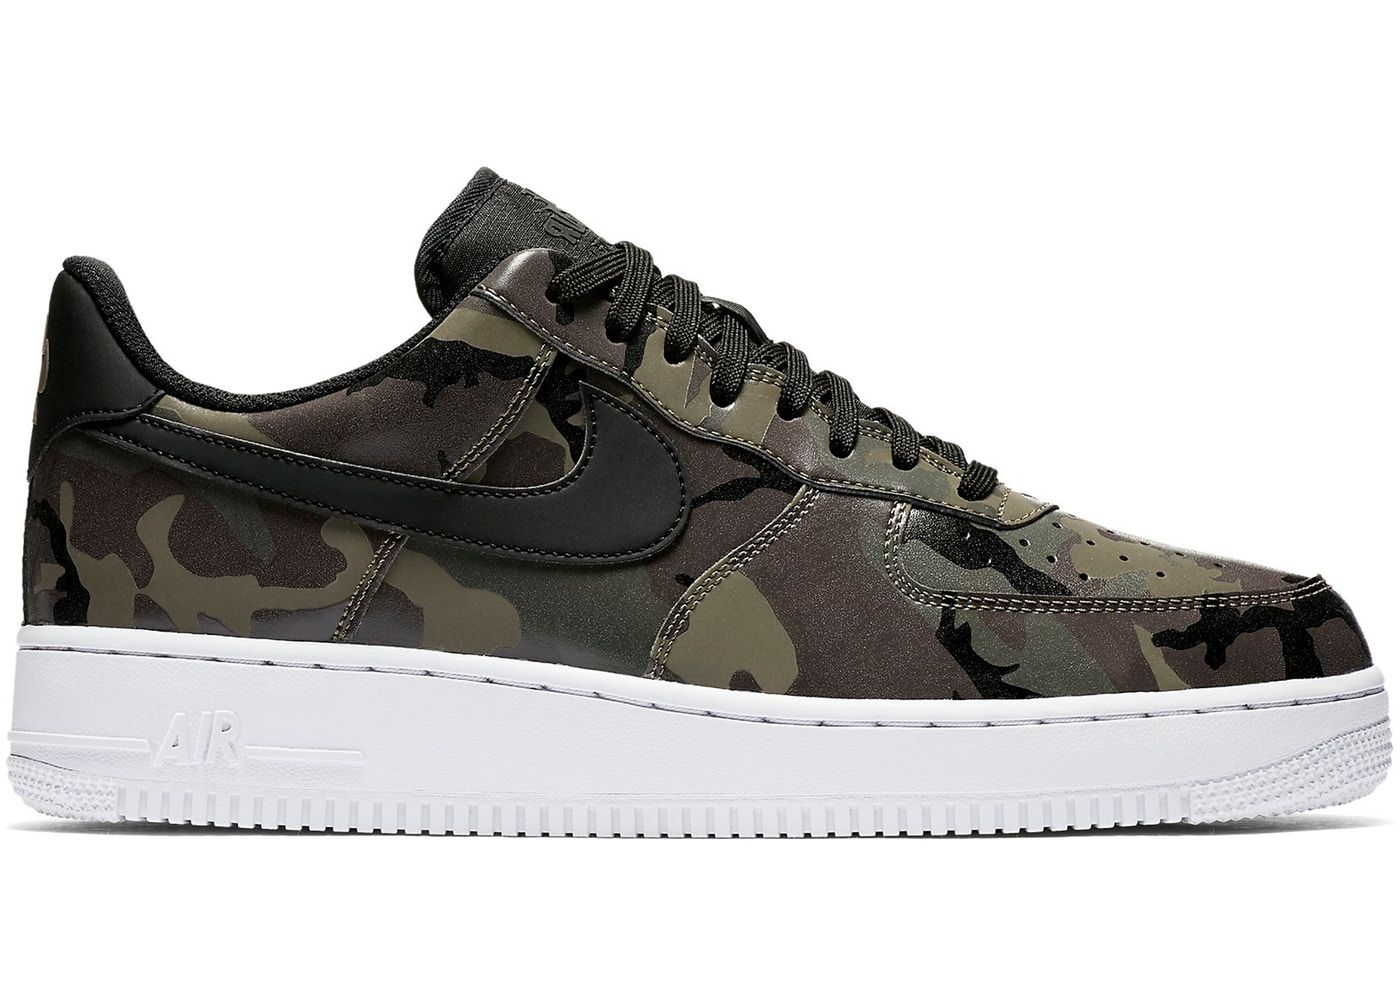 4763cc62 Air Force 1 Low Camo Olive in 2019 | StockX | Air force 1, Air force ...